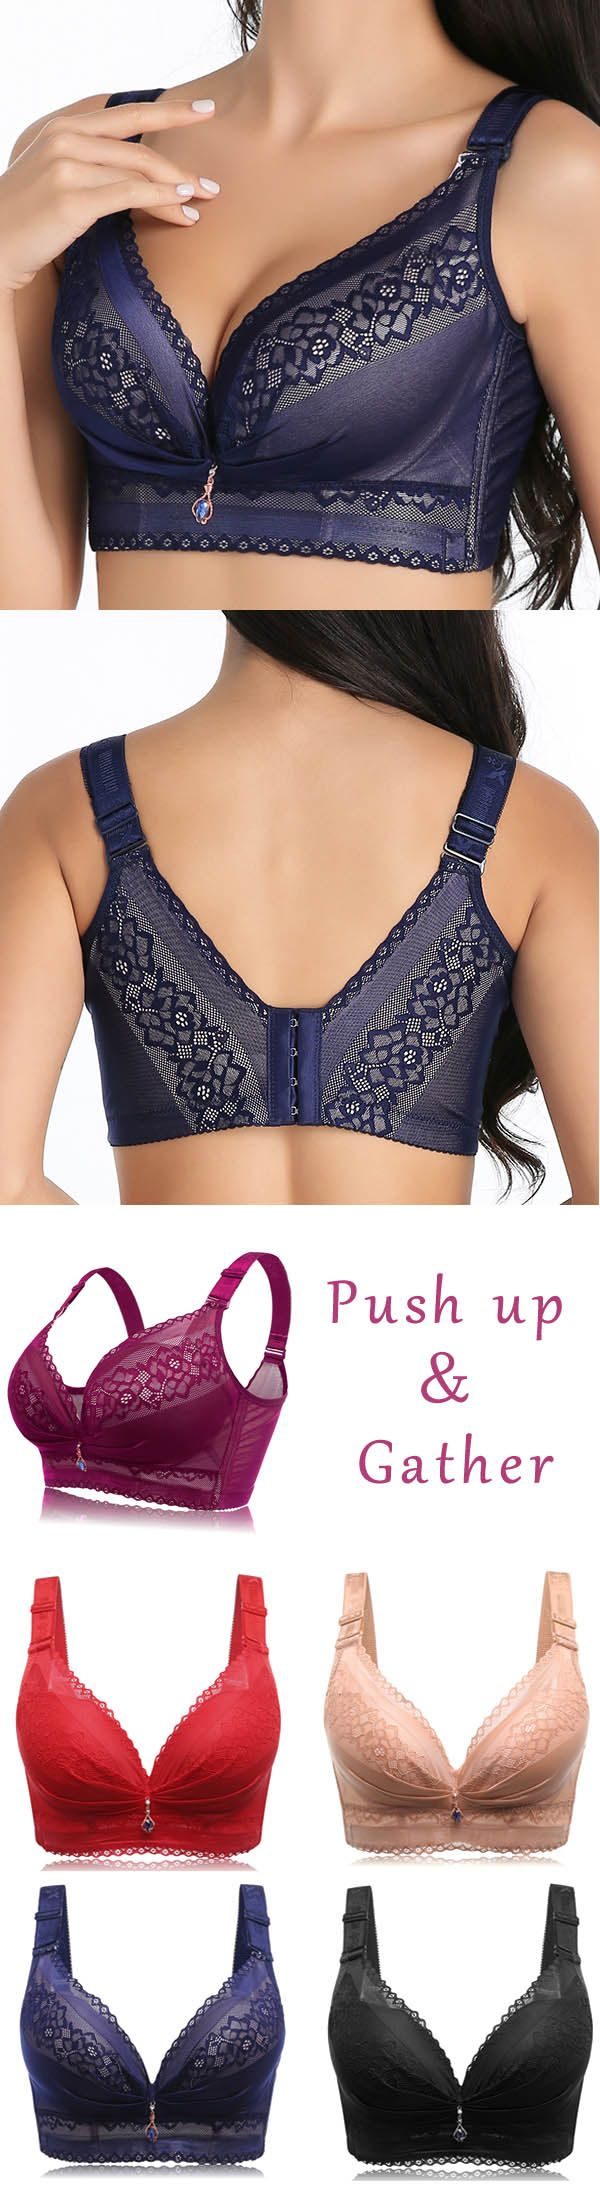 Full Cup Coverage Deep Plunge Wireless Adjusted Longline Bra. women bra, wireless bra, yoga bra, bandeau bra, push up bra, wonderbra, comfy vest bra, cami bra, plus size bras. Buy now!